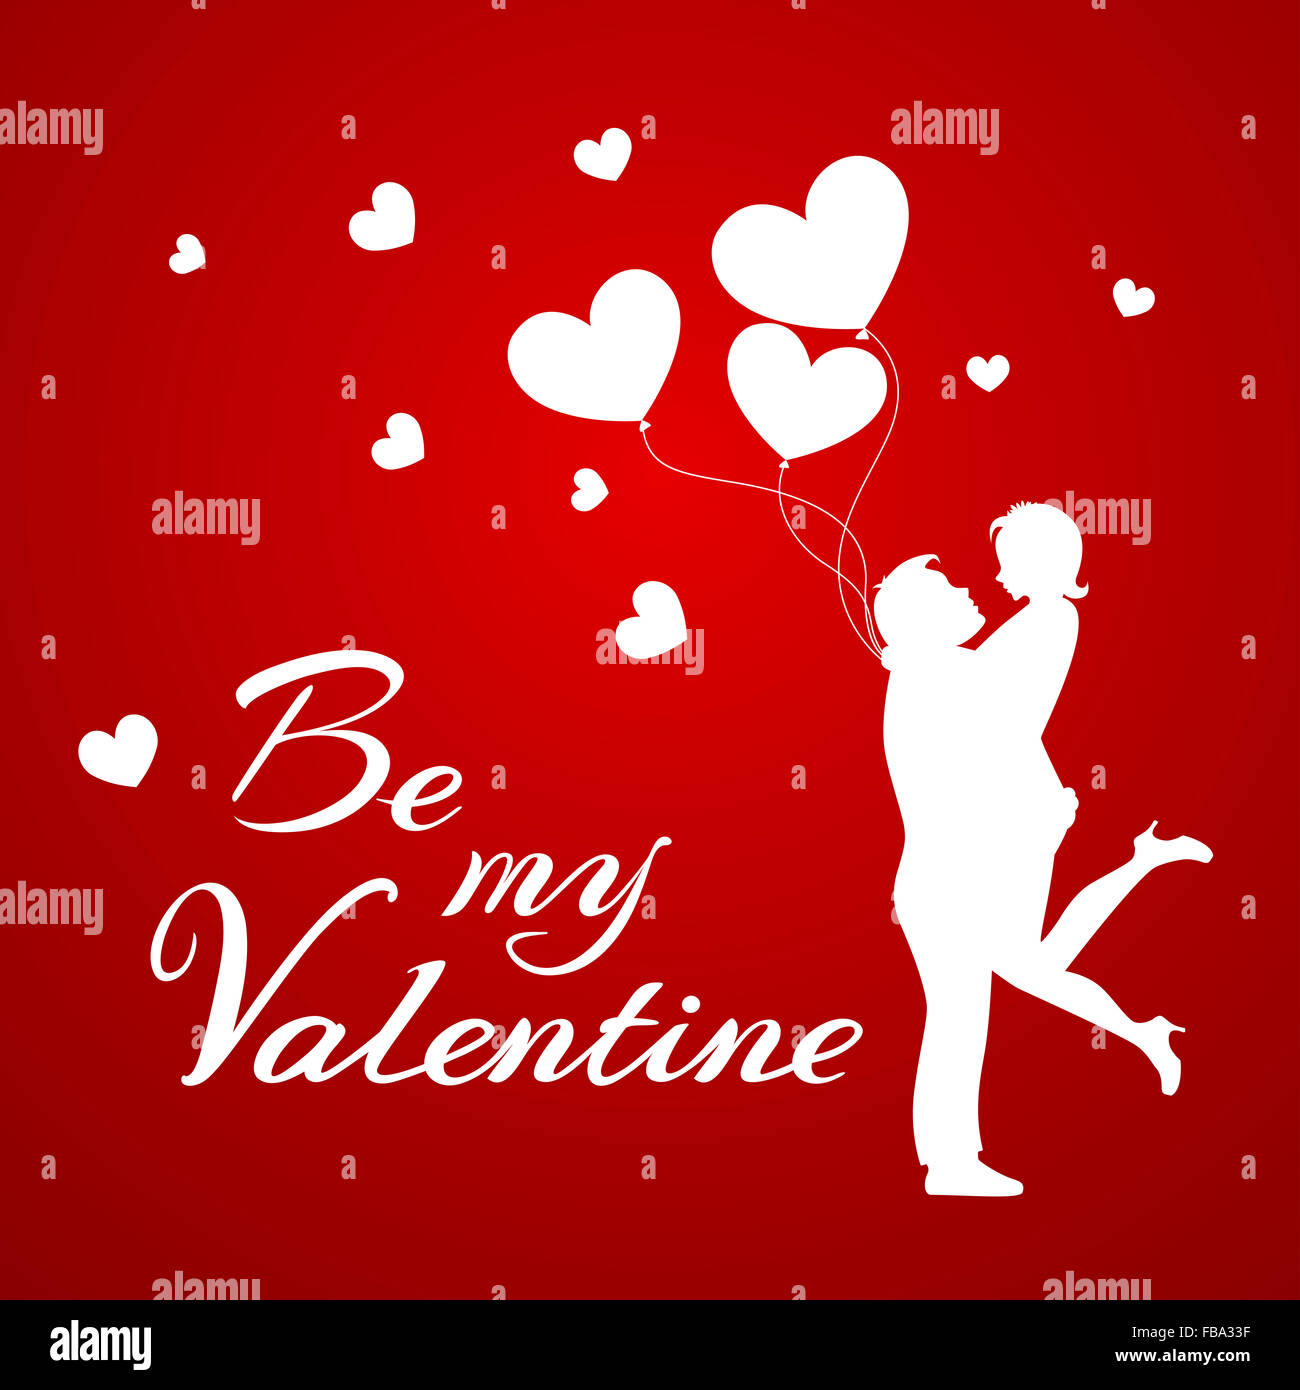 Free Downloads Quotes Wallpaper Mobile Romantic Background With Couple And Balloons For Valentine